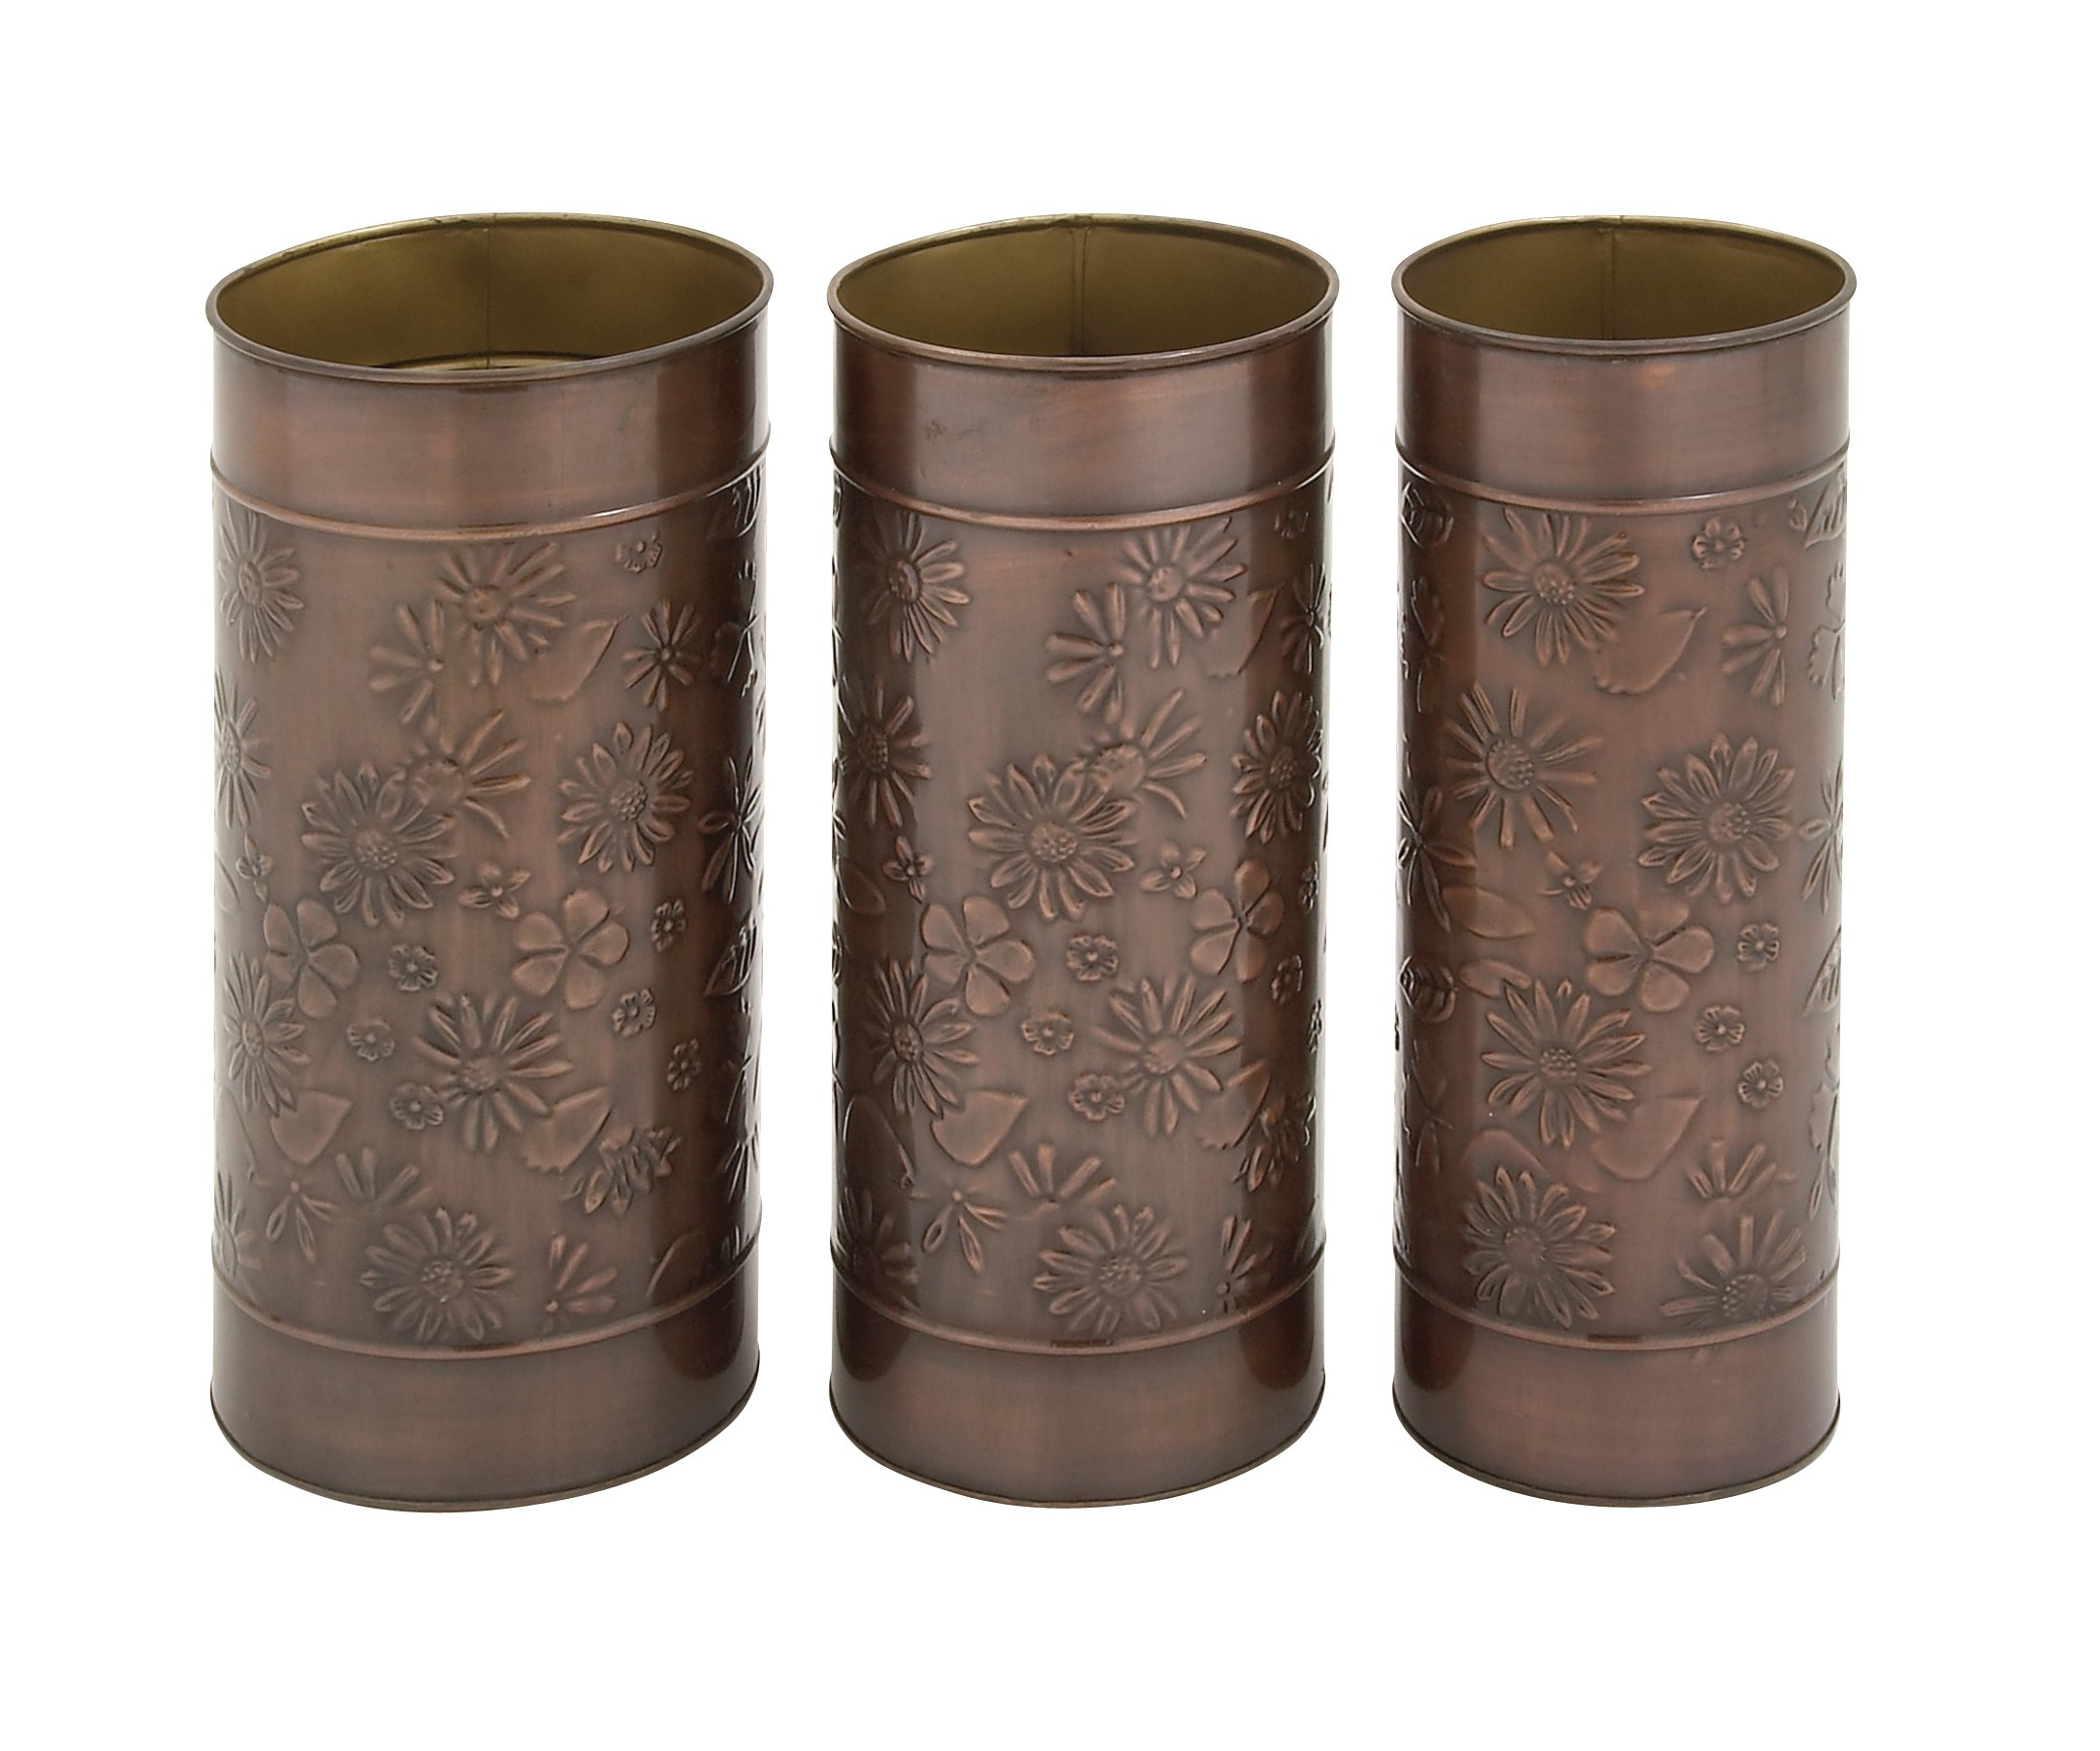 Deco 79 68865 Lovely Floral Themed Umbrella Stand, Set of 3, 9'' W x 19'' H